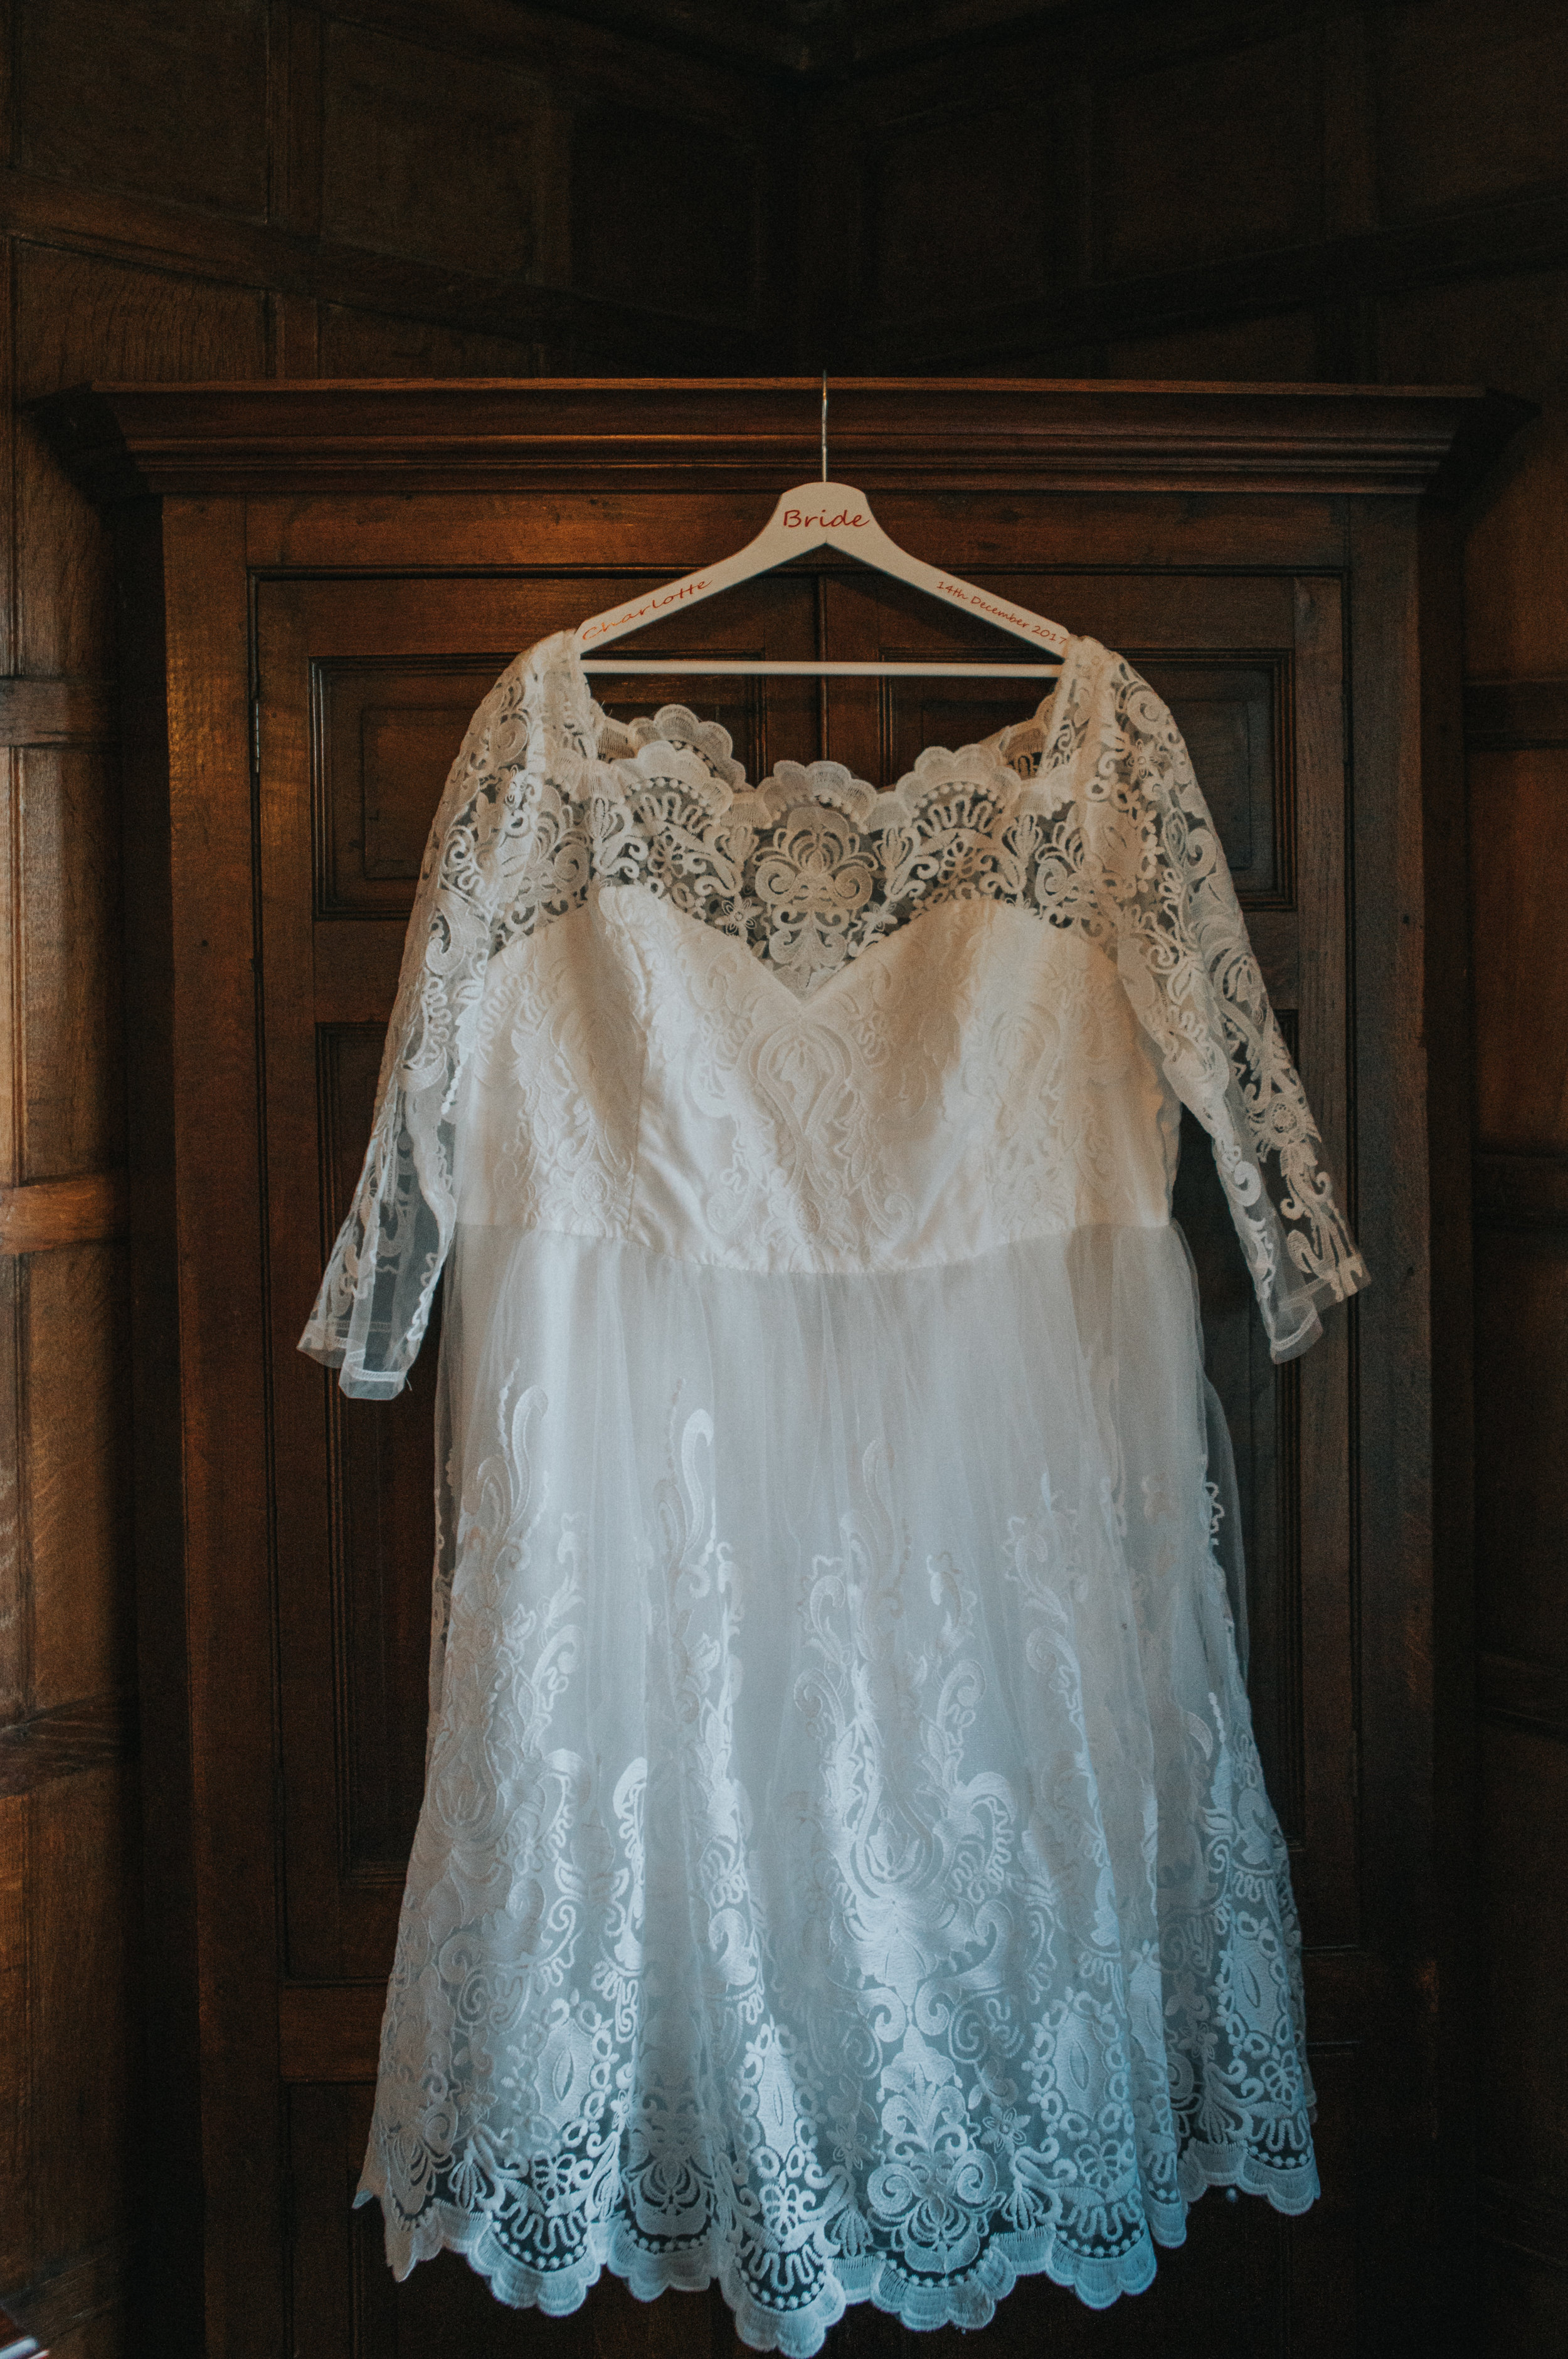 london-kent-wedding-photography-lympne-castle-bride-prep-dress-05